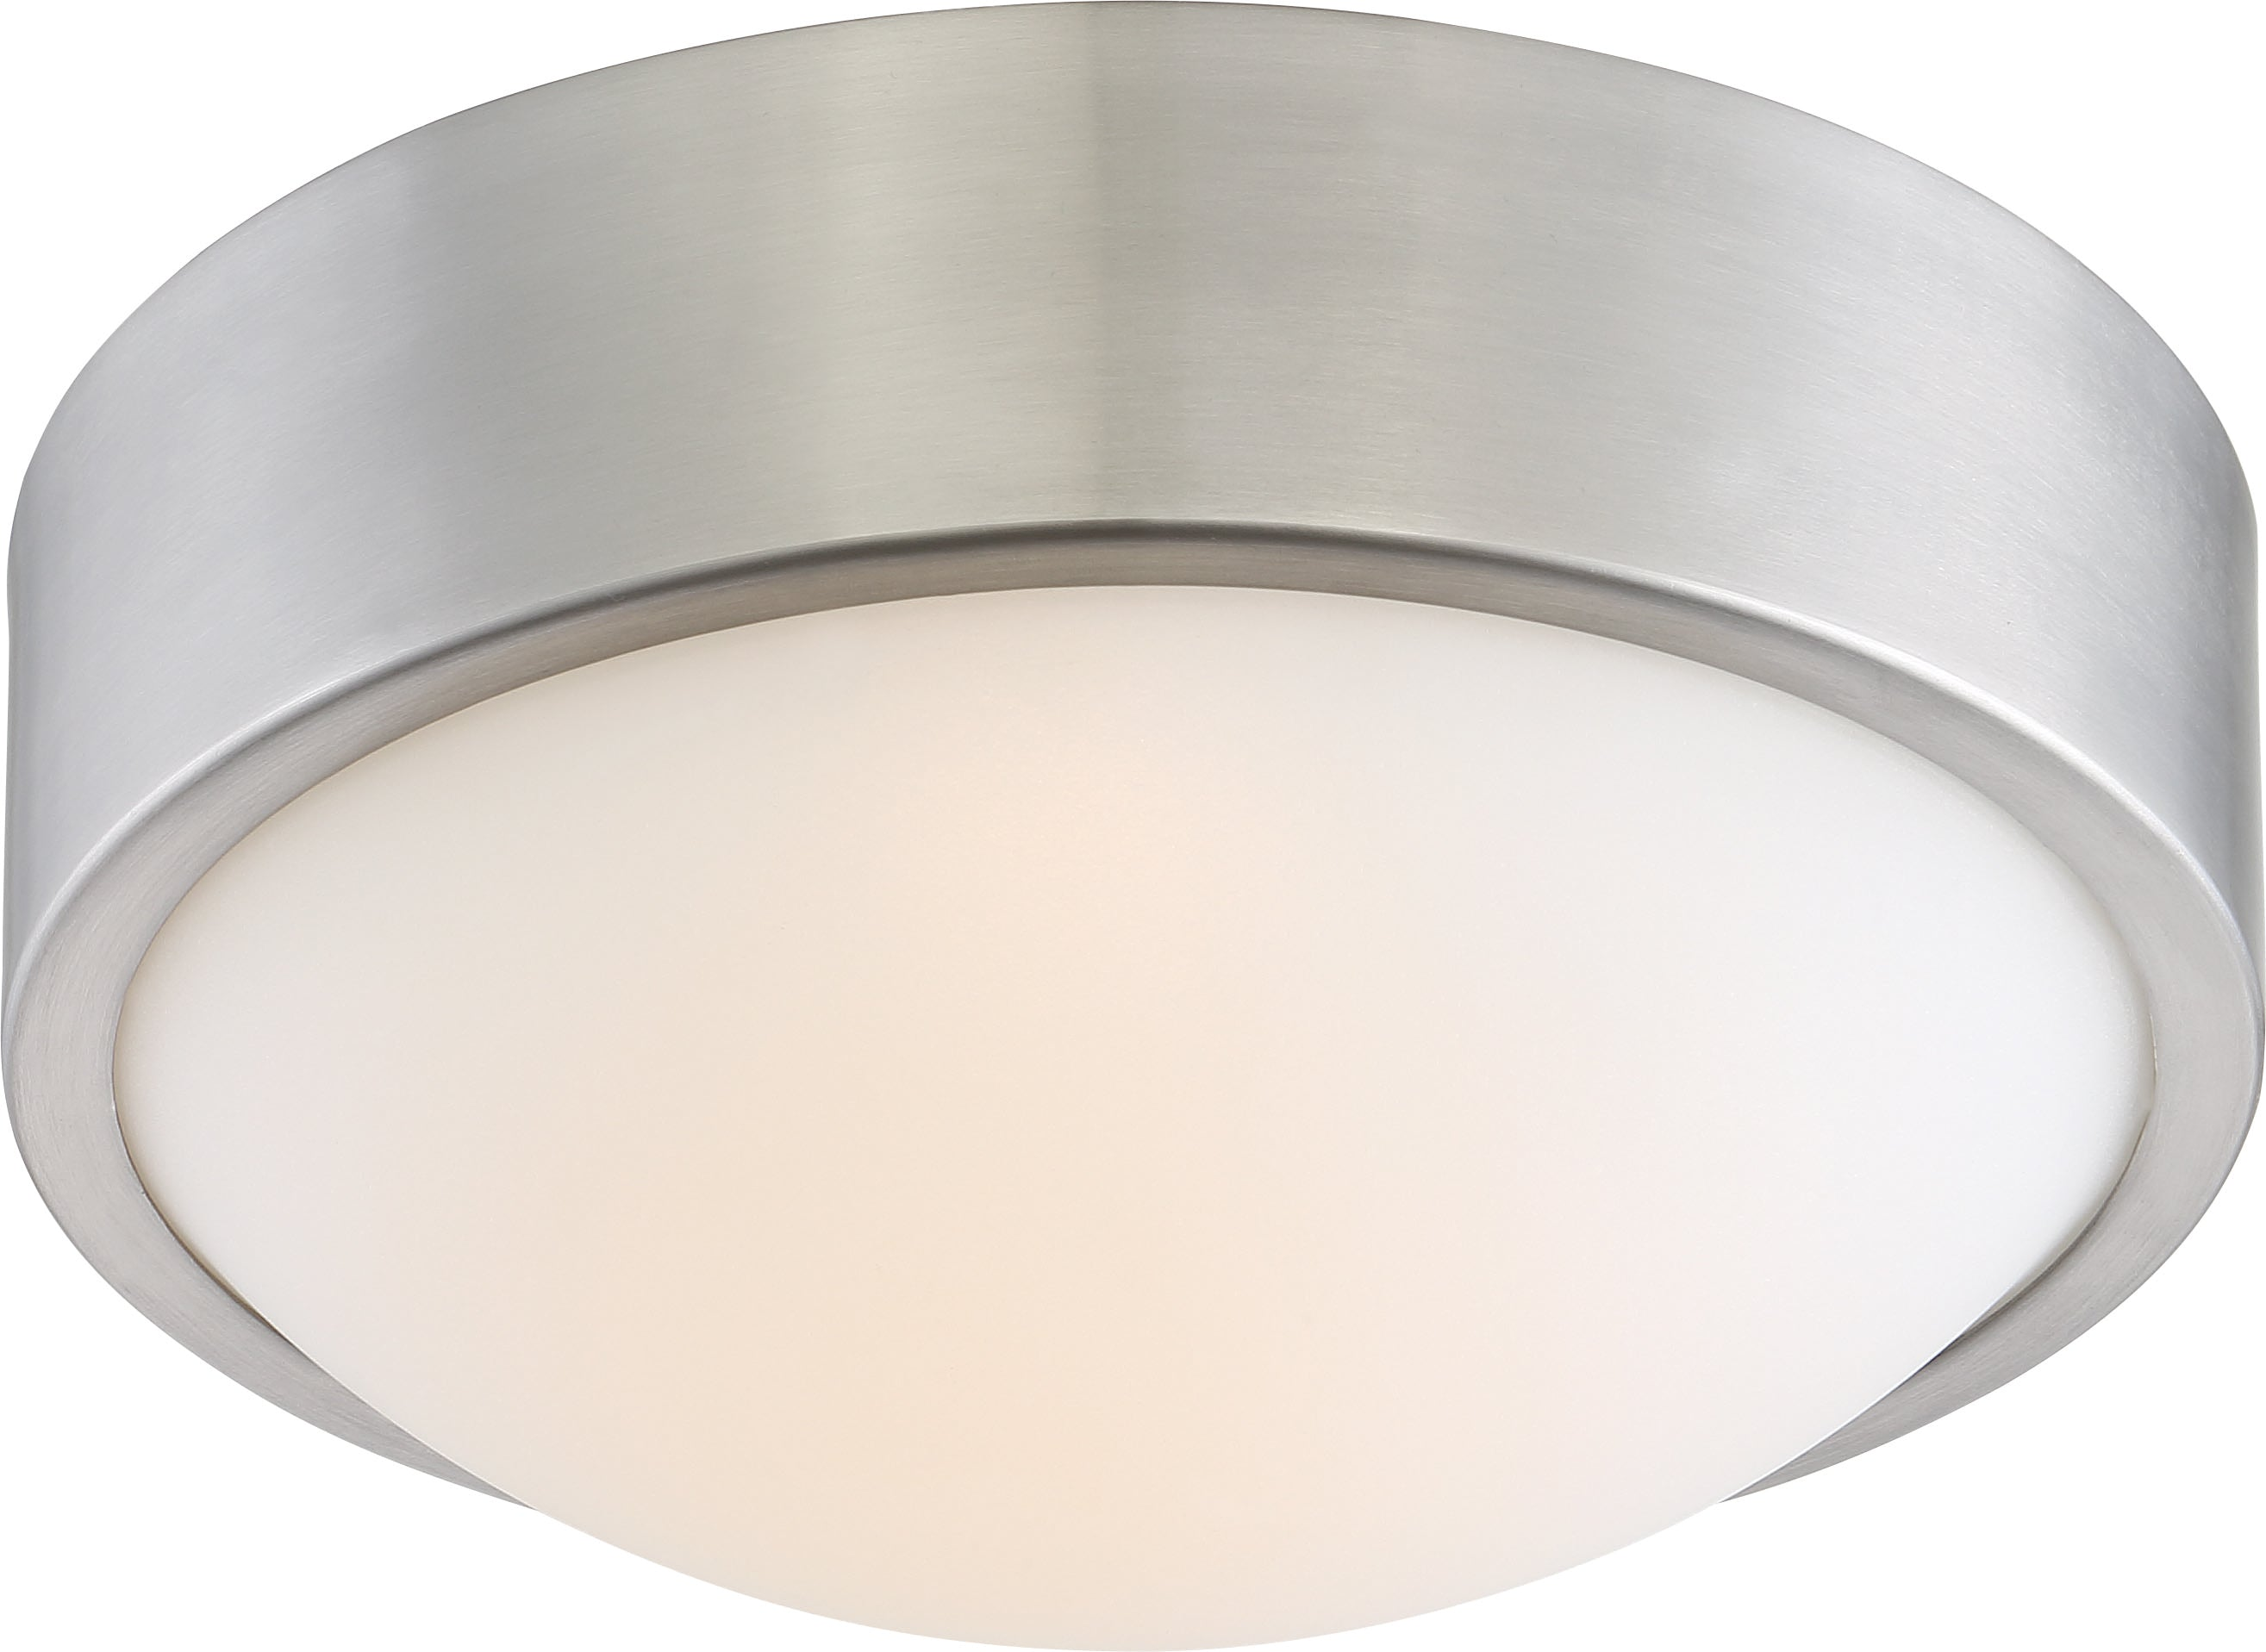 "Nuvo Perk 9"" LED Flush Mount Fixture w/ White Glass in Brushed Nickel Finish"